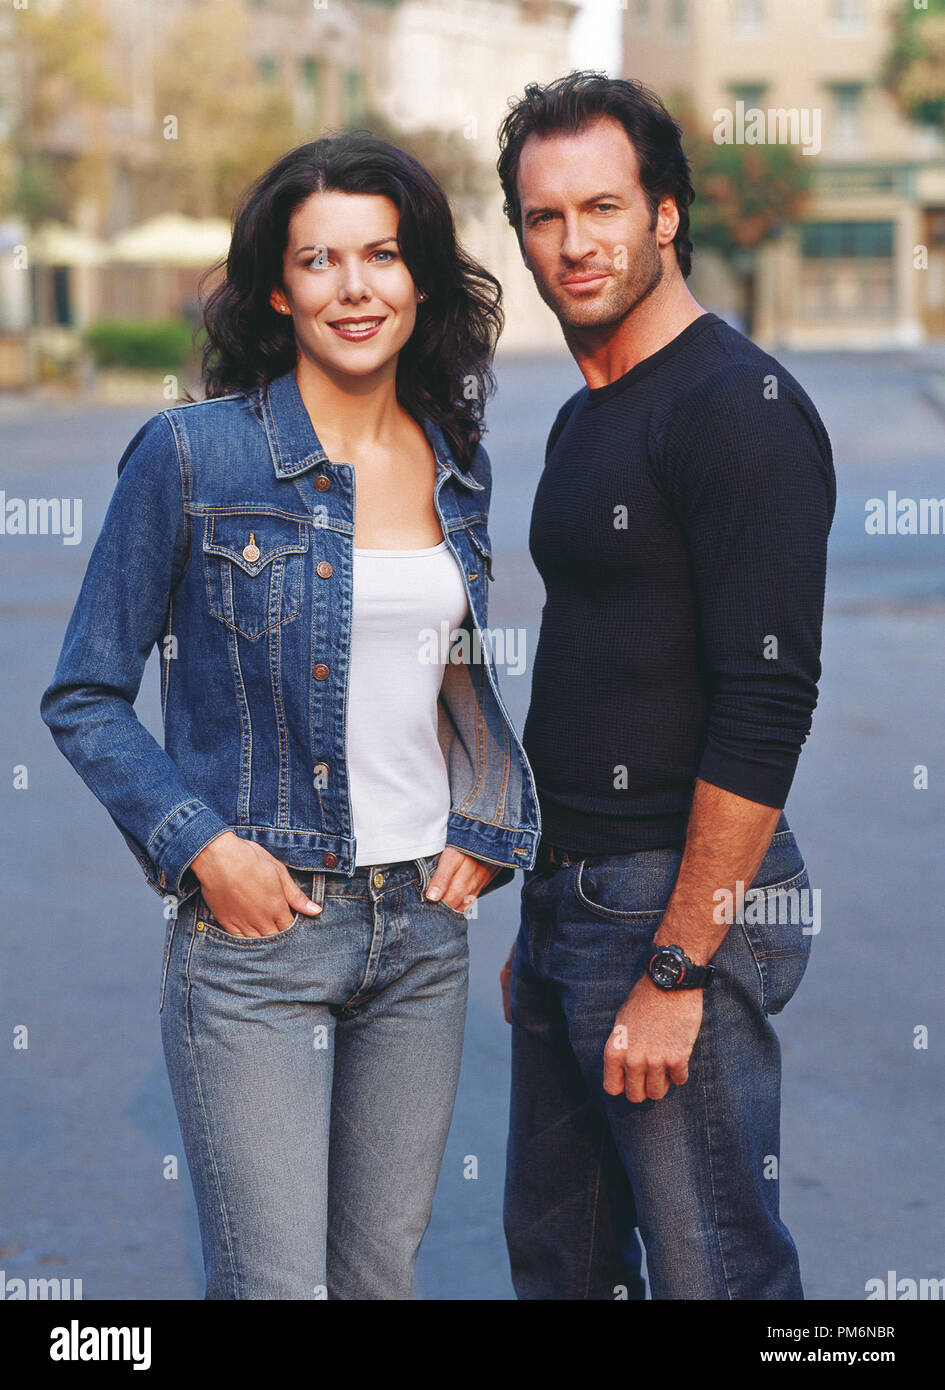 Film Still / Publicity Still from 'Gilmore Girls' (Episode: That Damn Donna Reed) Lauren Graham, Scott Patterson 2001 Photo credit: Frank Ockenfels    File Reference # 30847972THA  For Editorial Use Only -  All Rights Reserved - Stock Image